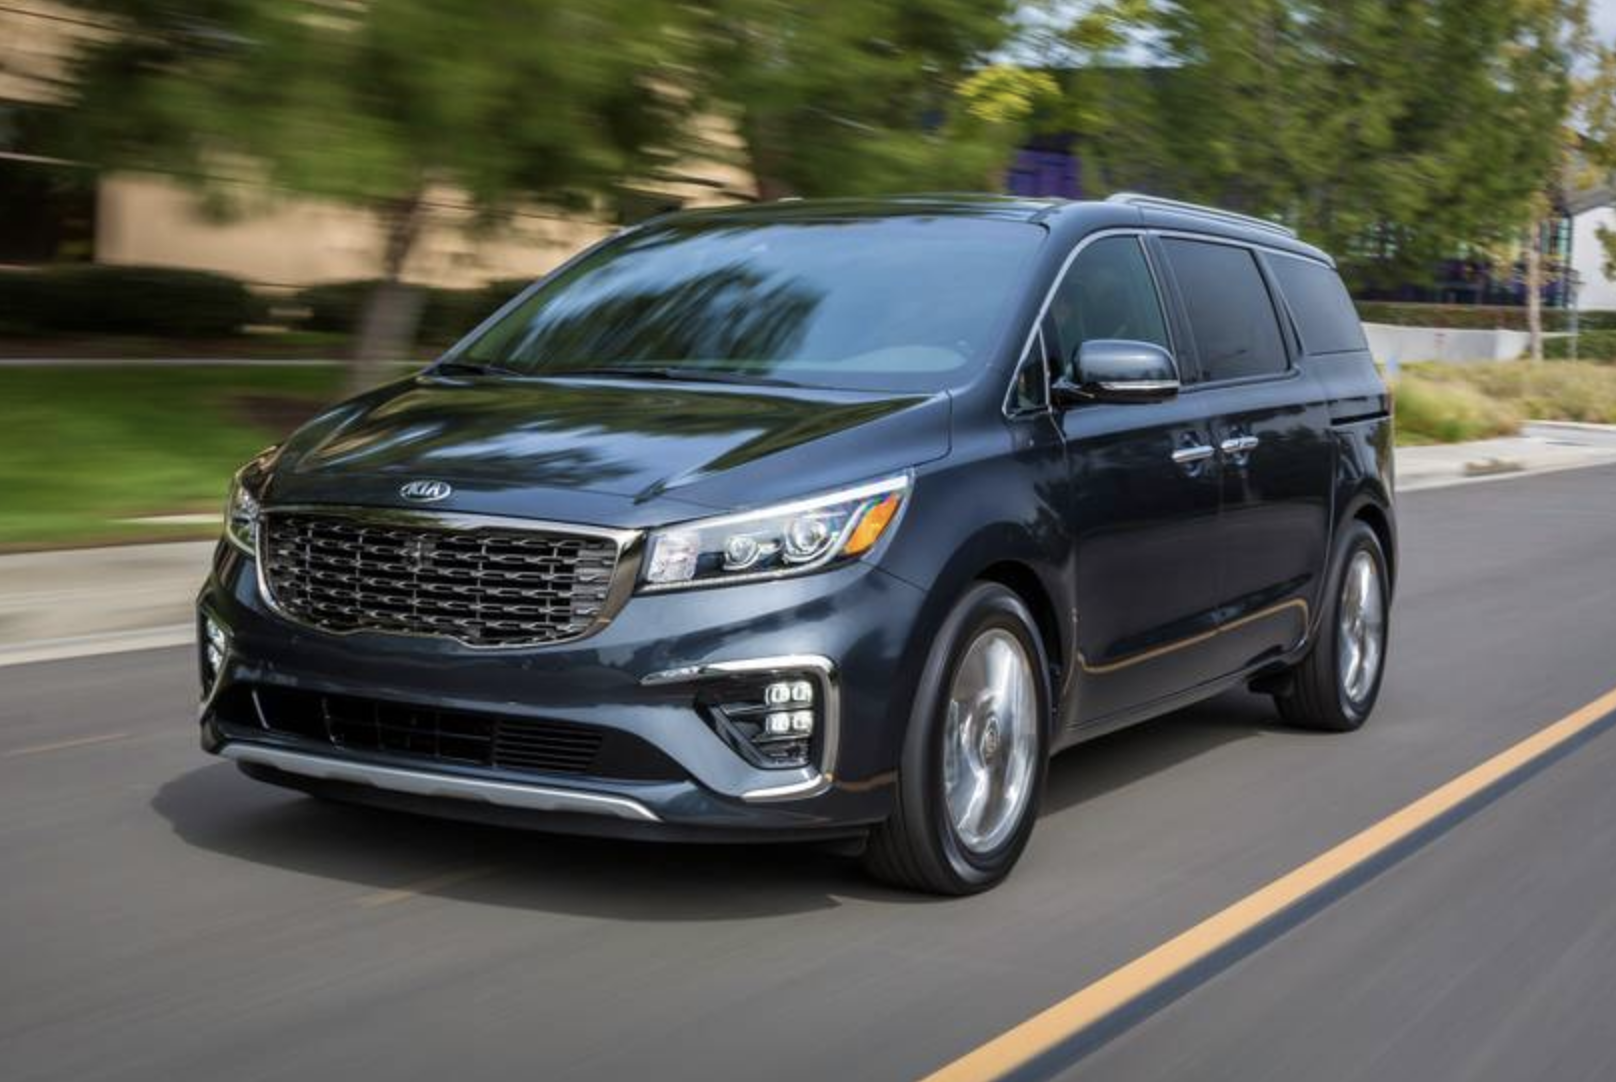 2019 Kia Sedona in New Hampshire